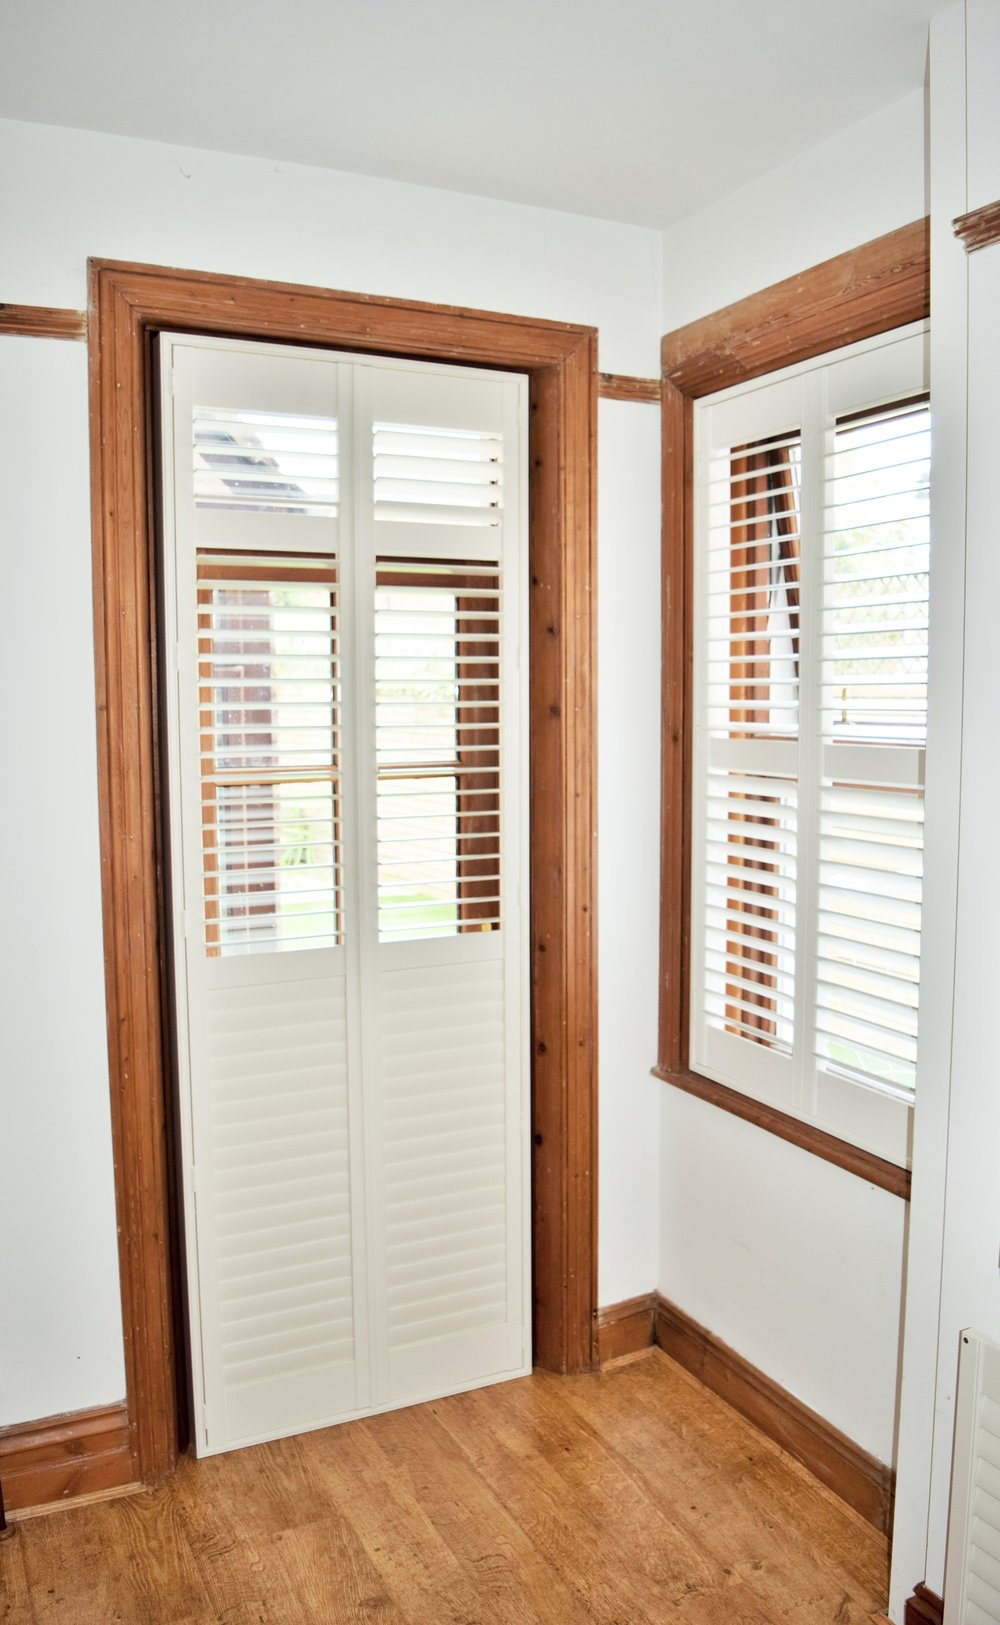 Patio doors plantation shutters Christchurch Bournemouth Poole Dorset.JPG